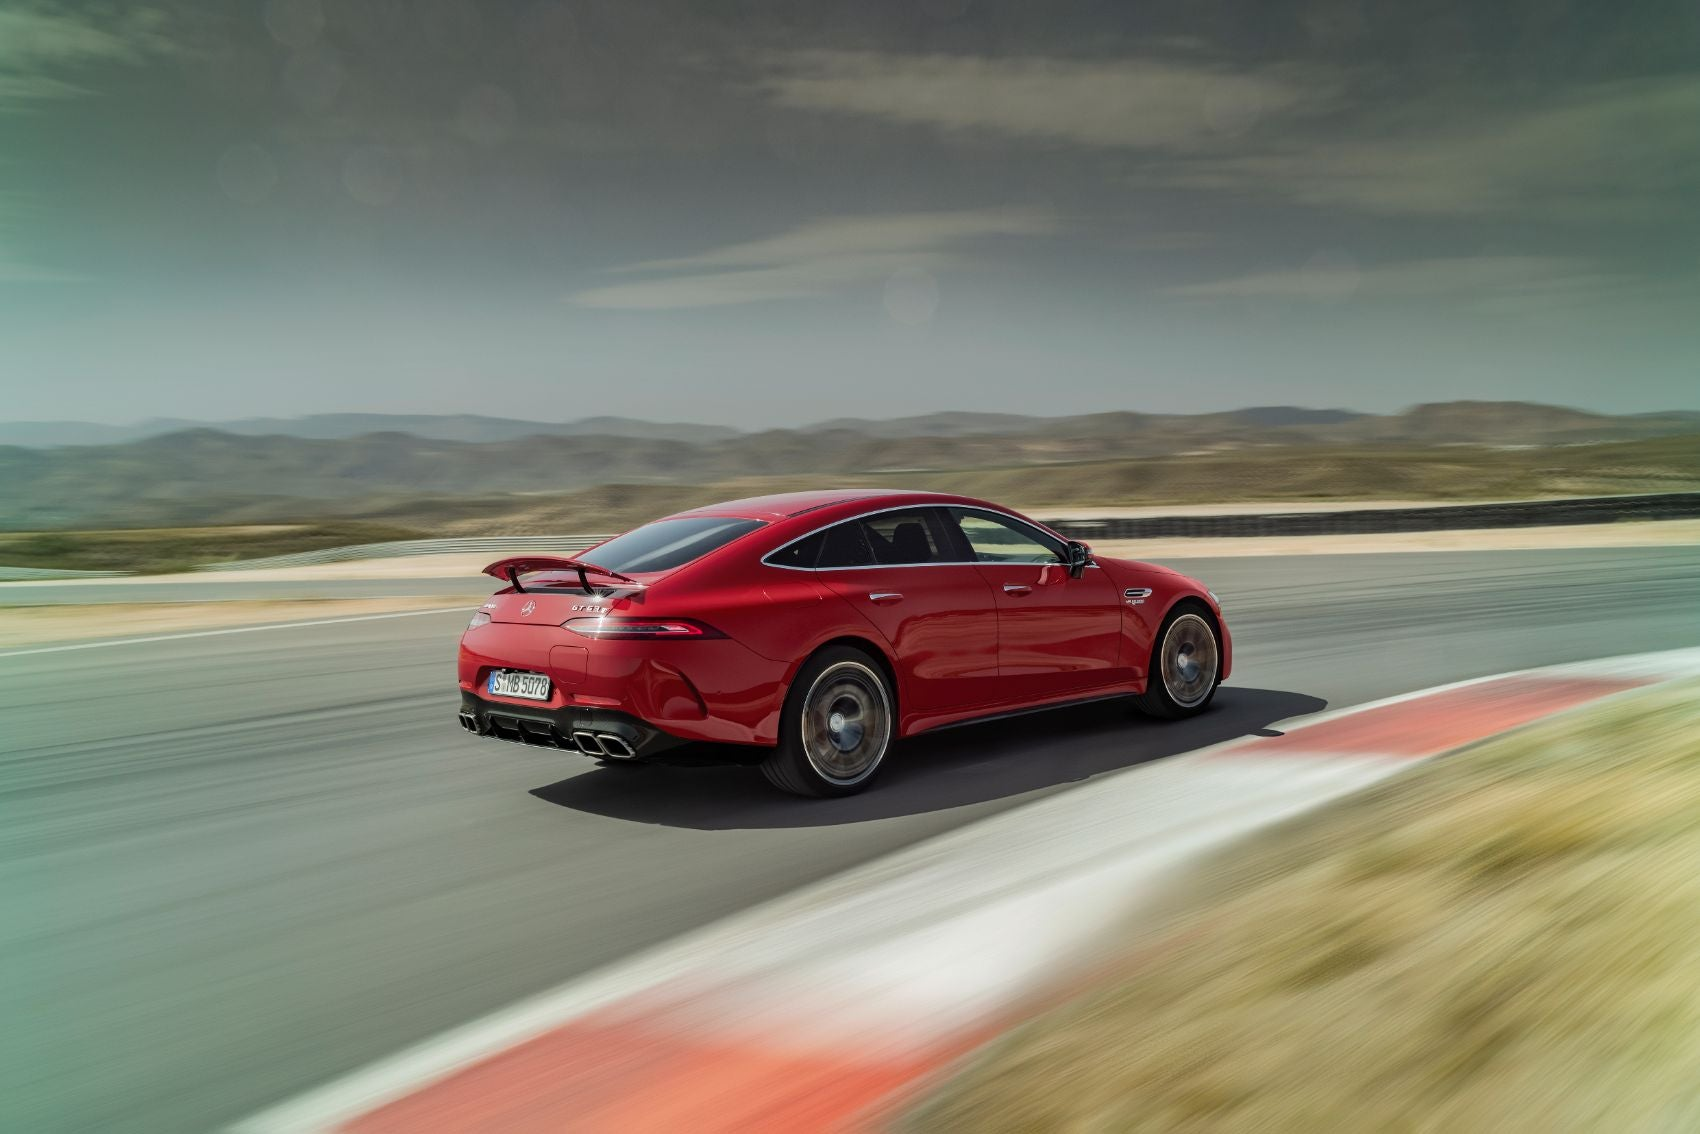 2023 Mercedes-AMG GT 63 S E Performance: Behold The Most Powerful Production Vehicle From Mercedes-AMG